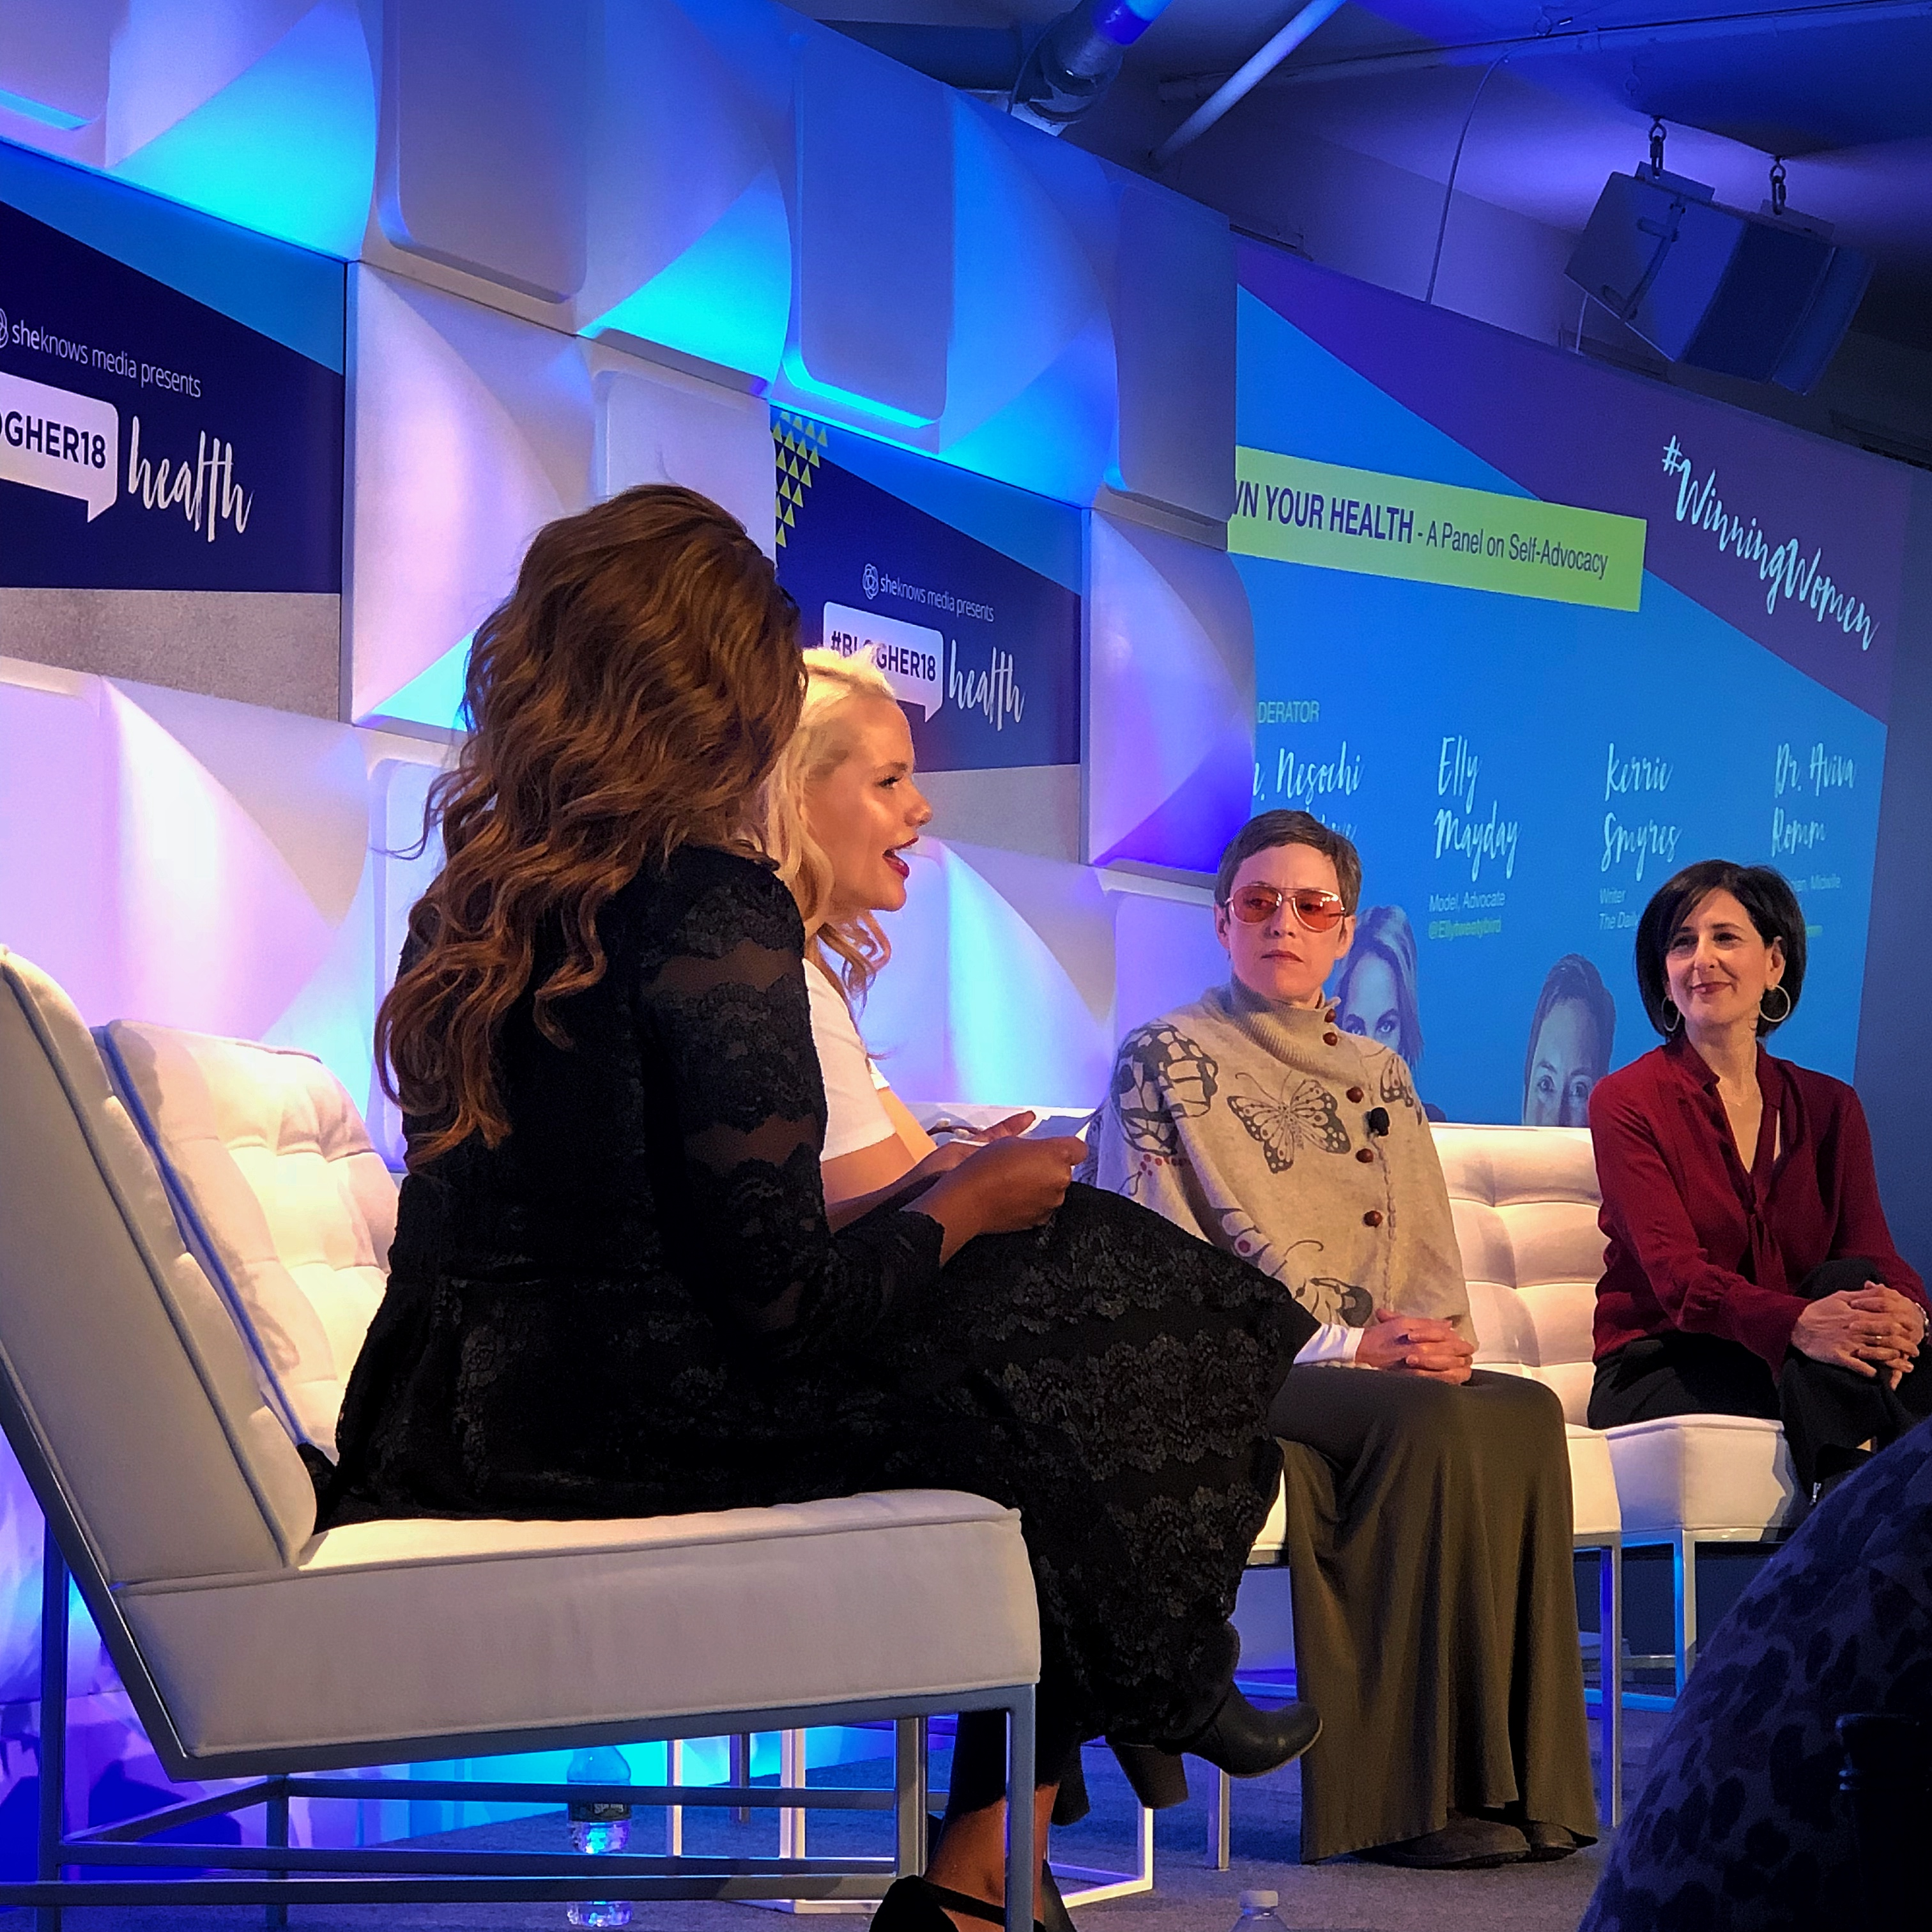 Pearls of Wisdom from BlogHer18 Health